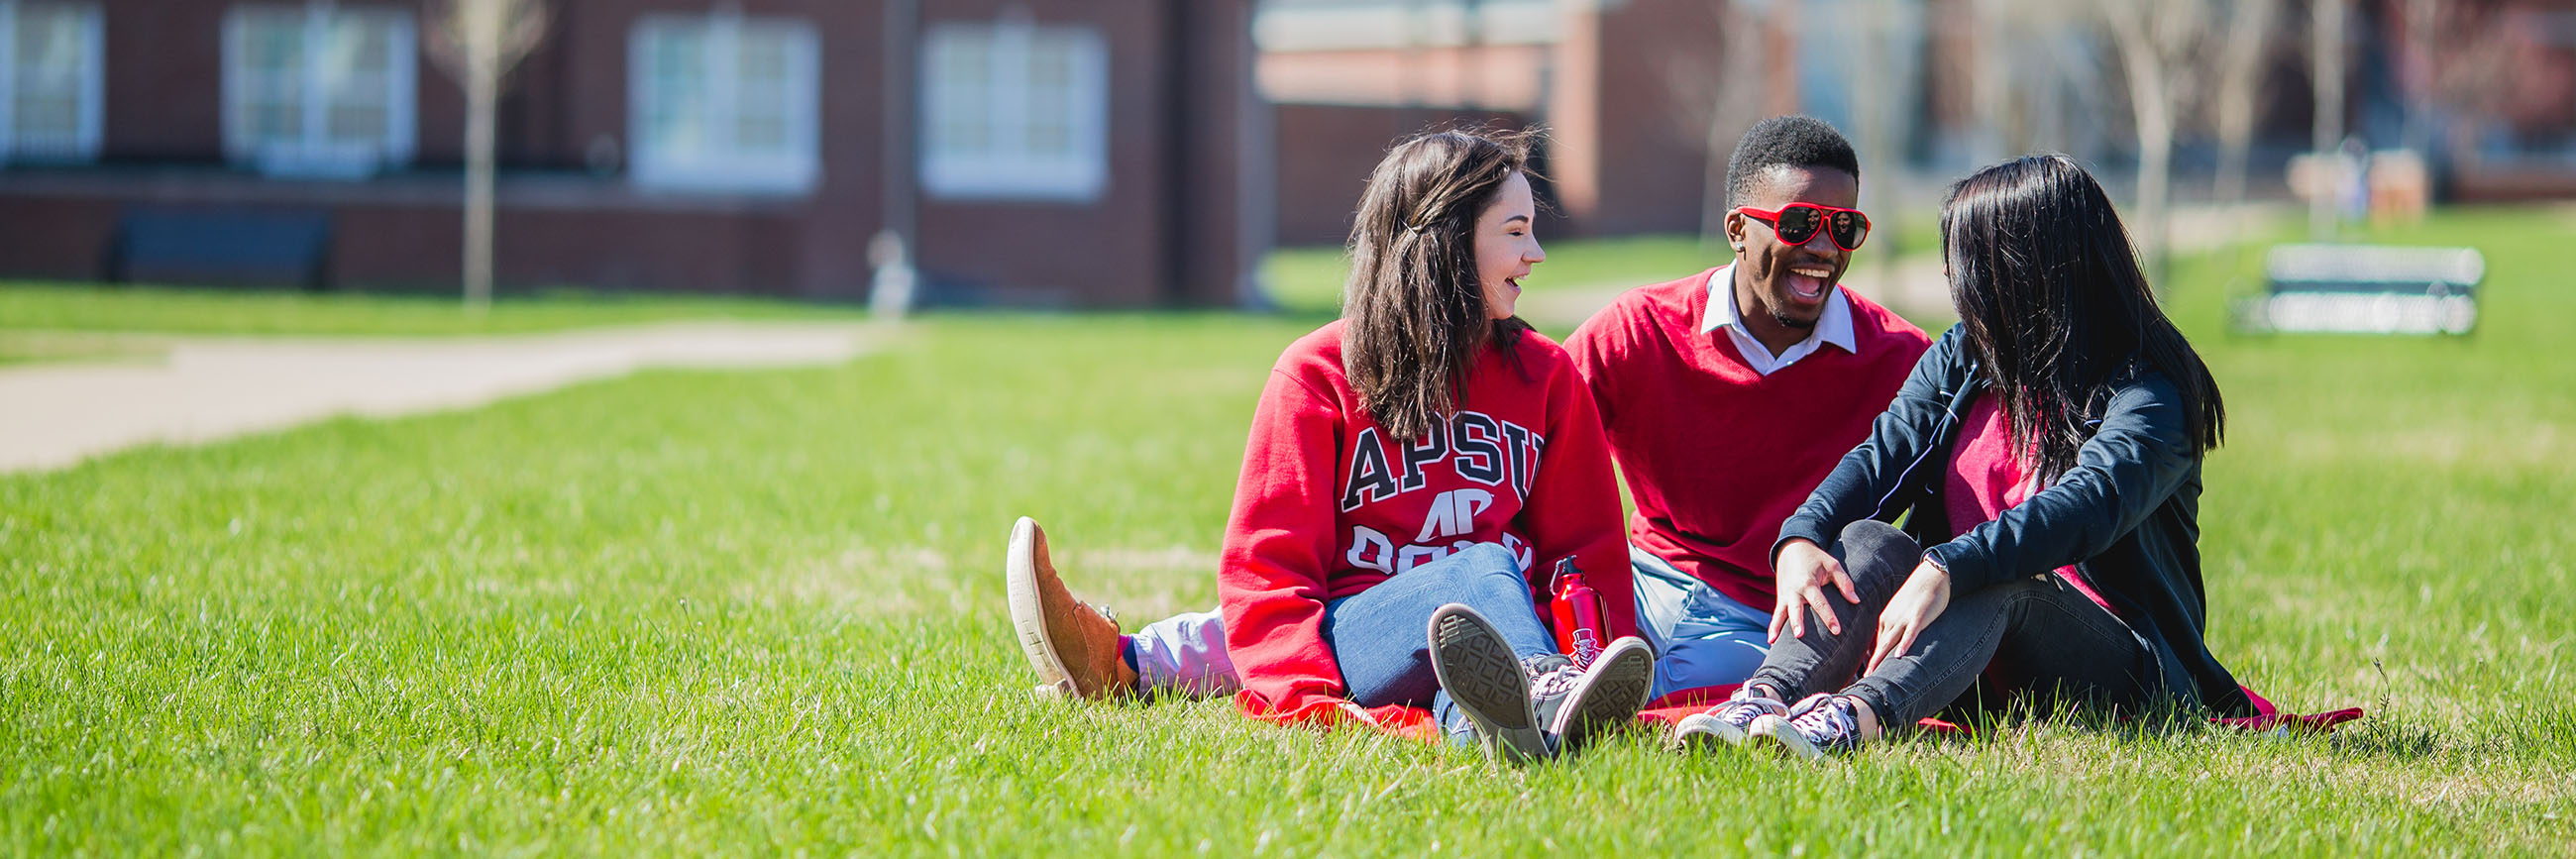 Housing/Residence Life & Dining Services at APSU